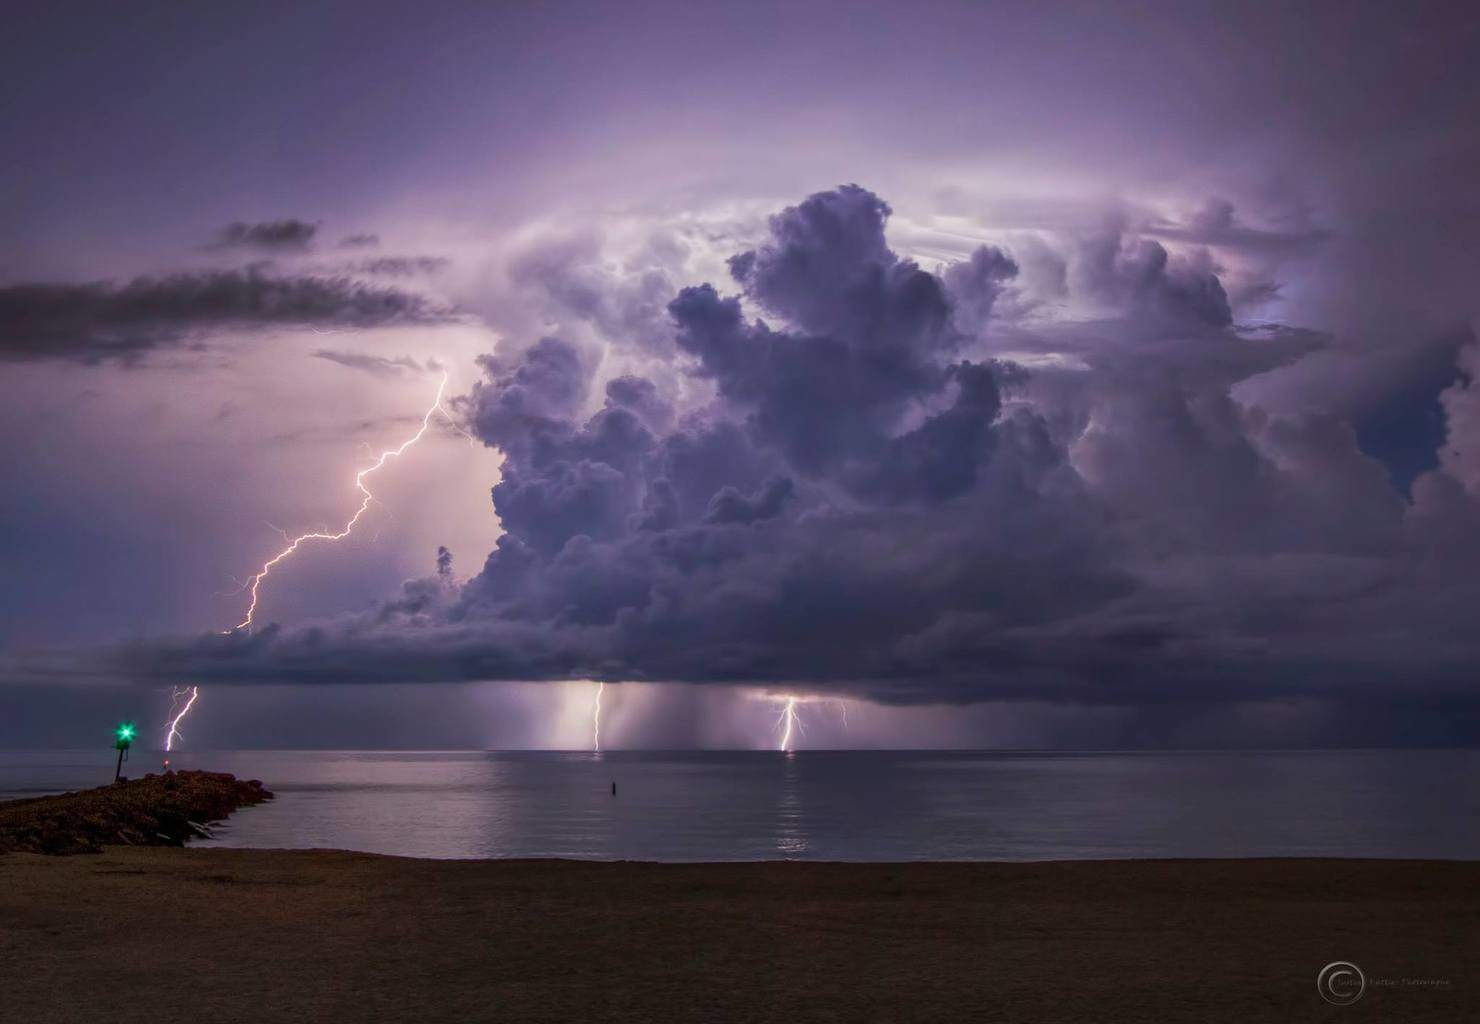 Shot from last week at the North Jetty in Nokomis, Florida and a time lapse of that storm and one I posted a shot from last week near Honeymoon Island State Park in Dunedin, Florida. Hope you enjoy.